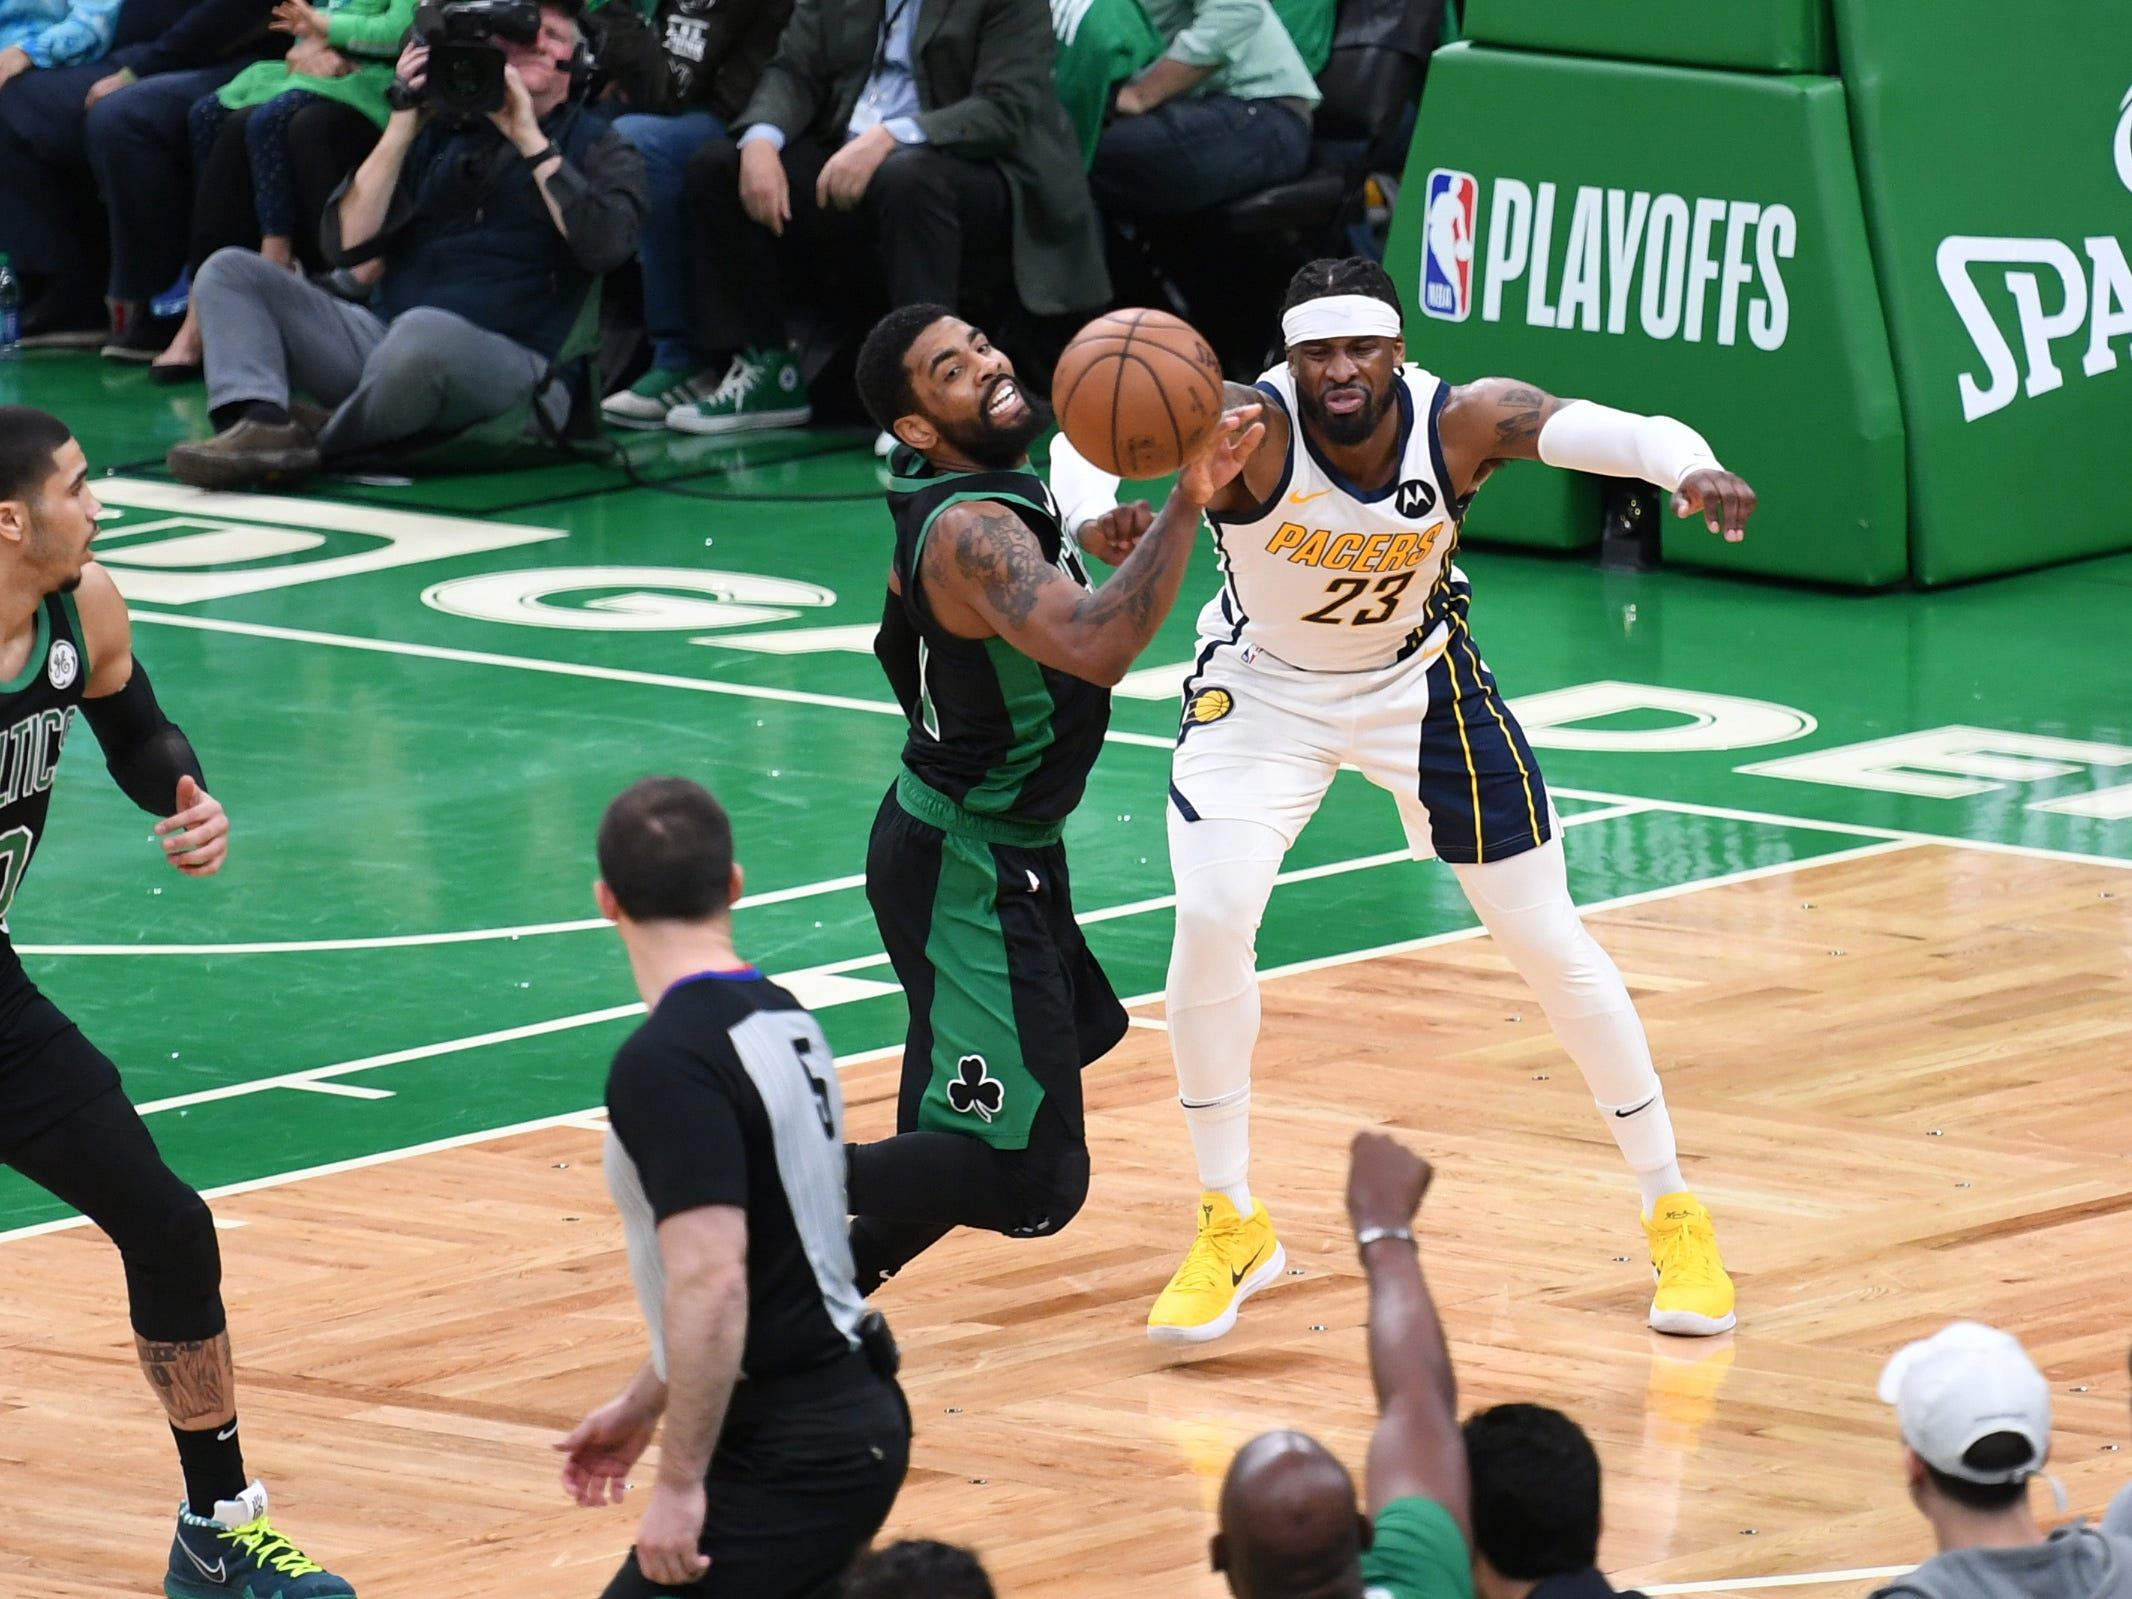 Apr 14, 2019; Boston, MA, USA; Boston Celtics guard Kyrie Irving (11) steals the ball from Indiana Pacers guard Wesley Matthews (23) during the first half in game one of the first round of the 2019 NBA Playoffs at TD Garden.